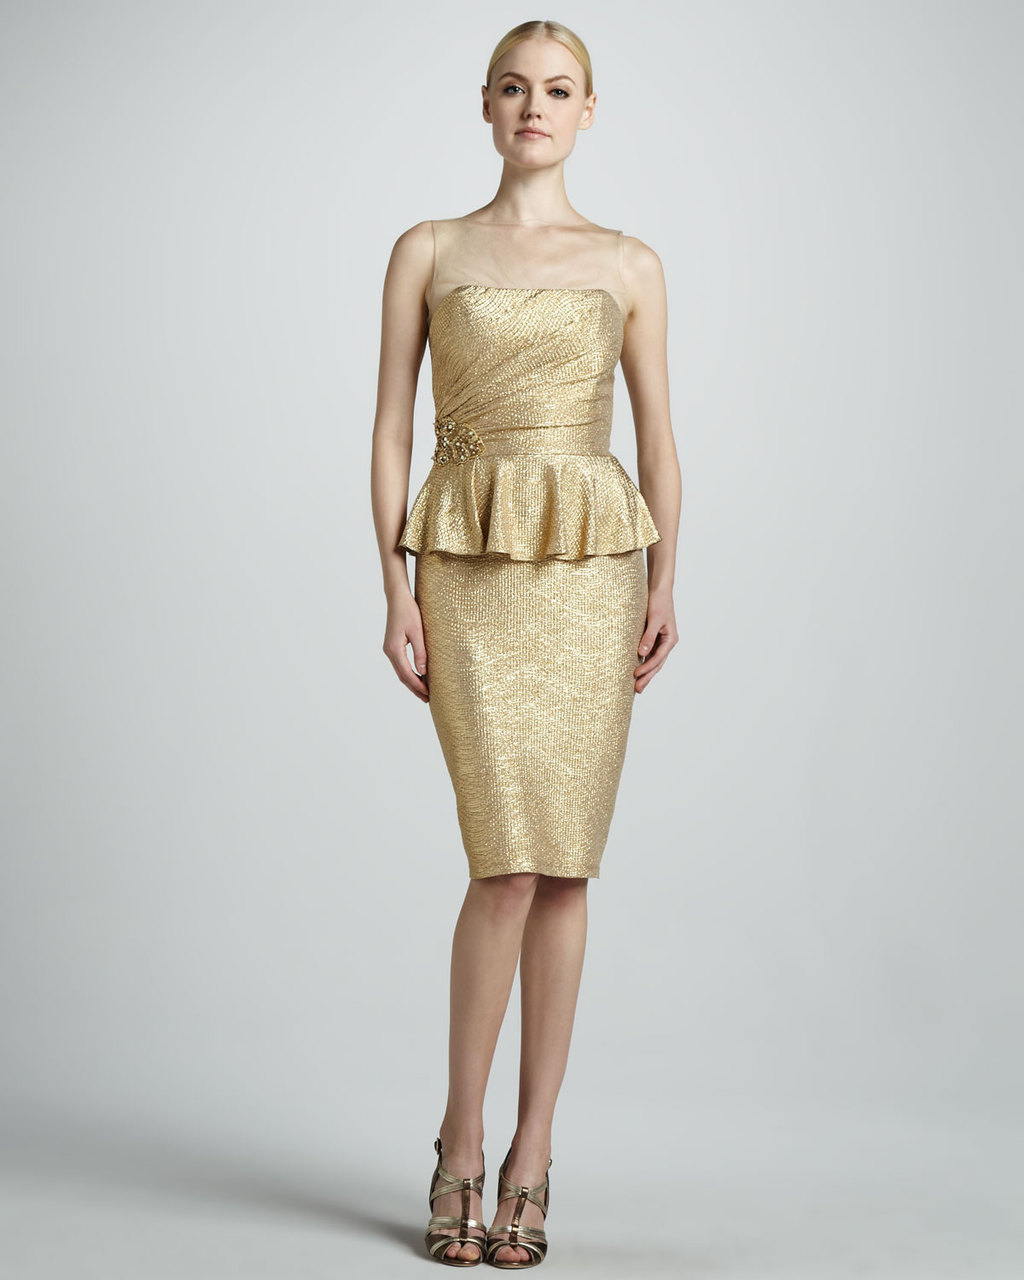 Metallic Wedding Guest Dresses Gold Cocktail With Illusion Neckline